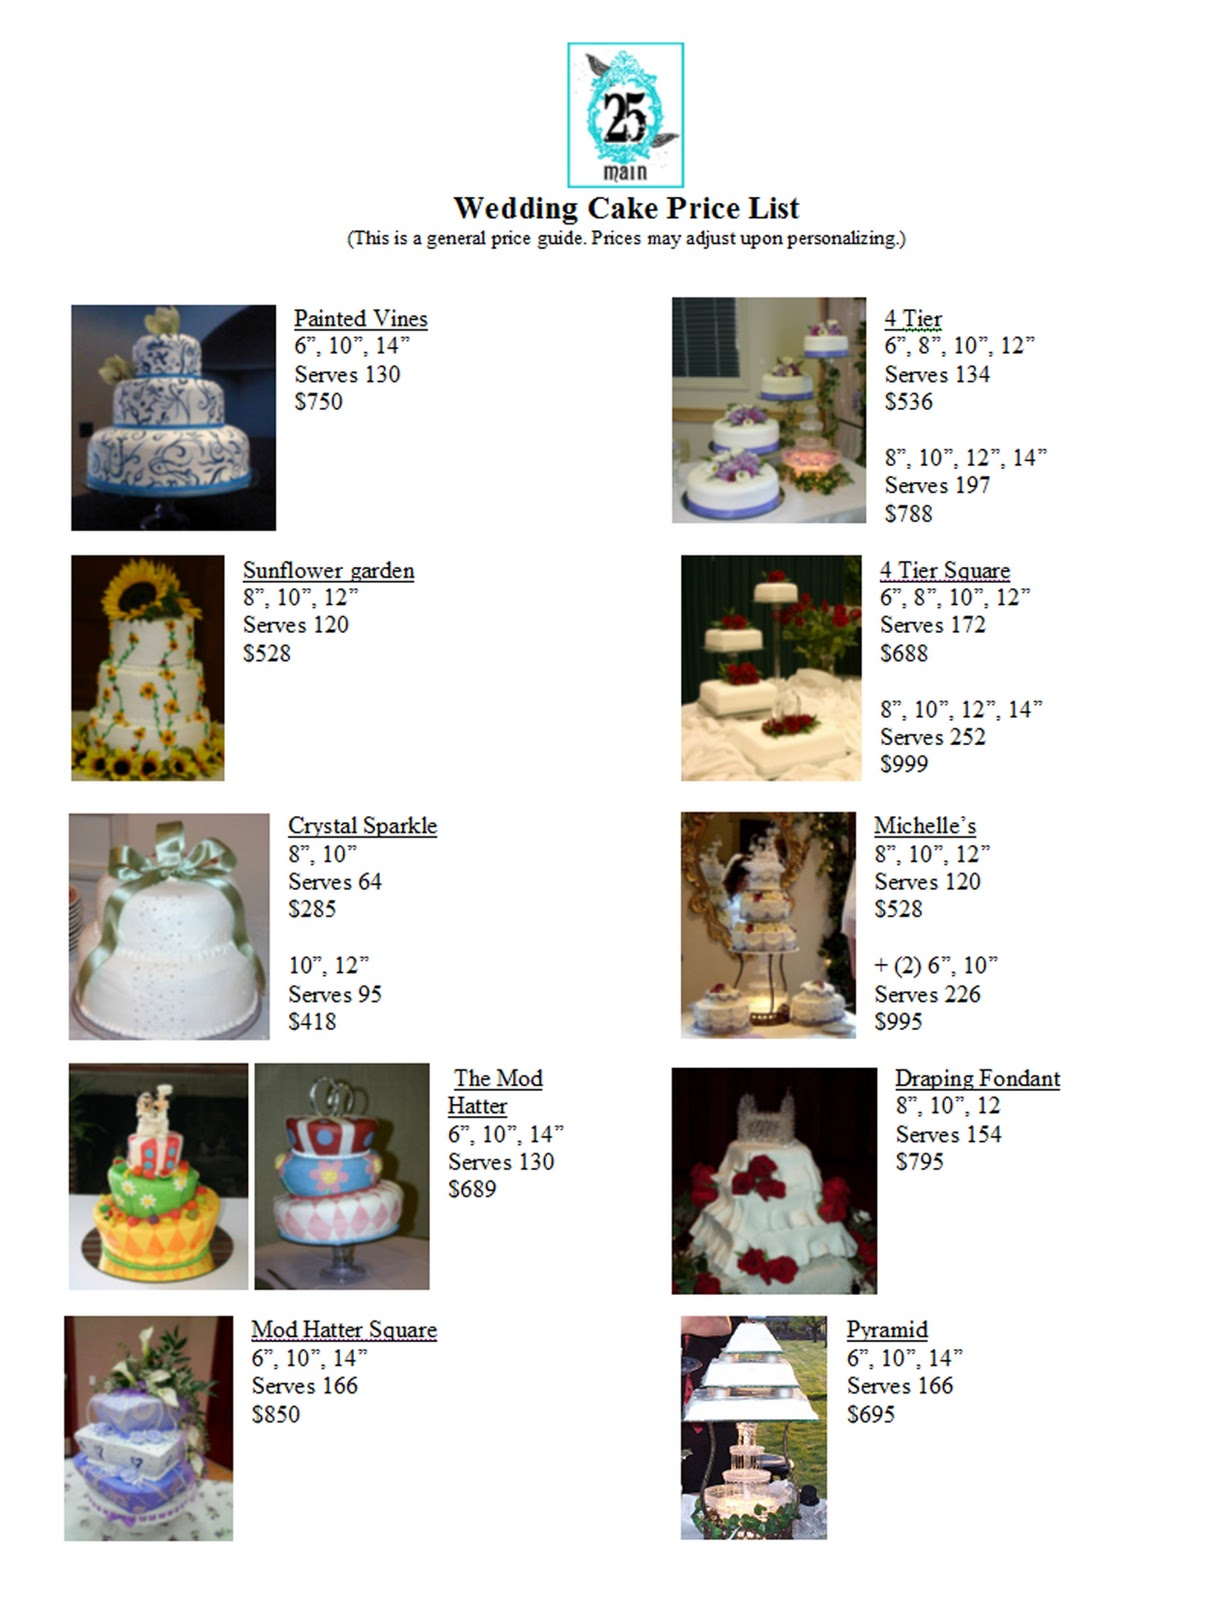 Cake Price List Template http://vaunascakes.blogspot.com/p/wedding-cake-price-list.html